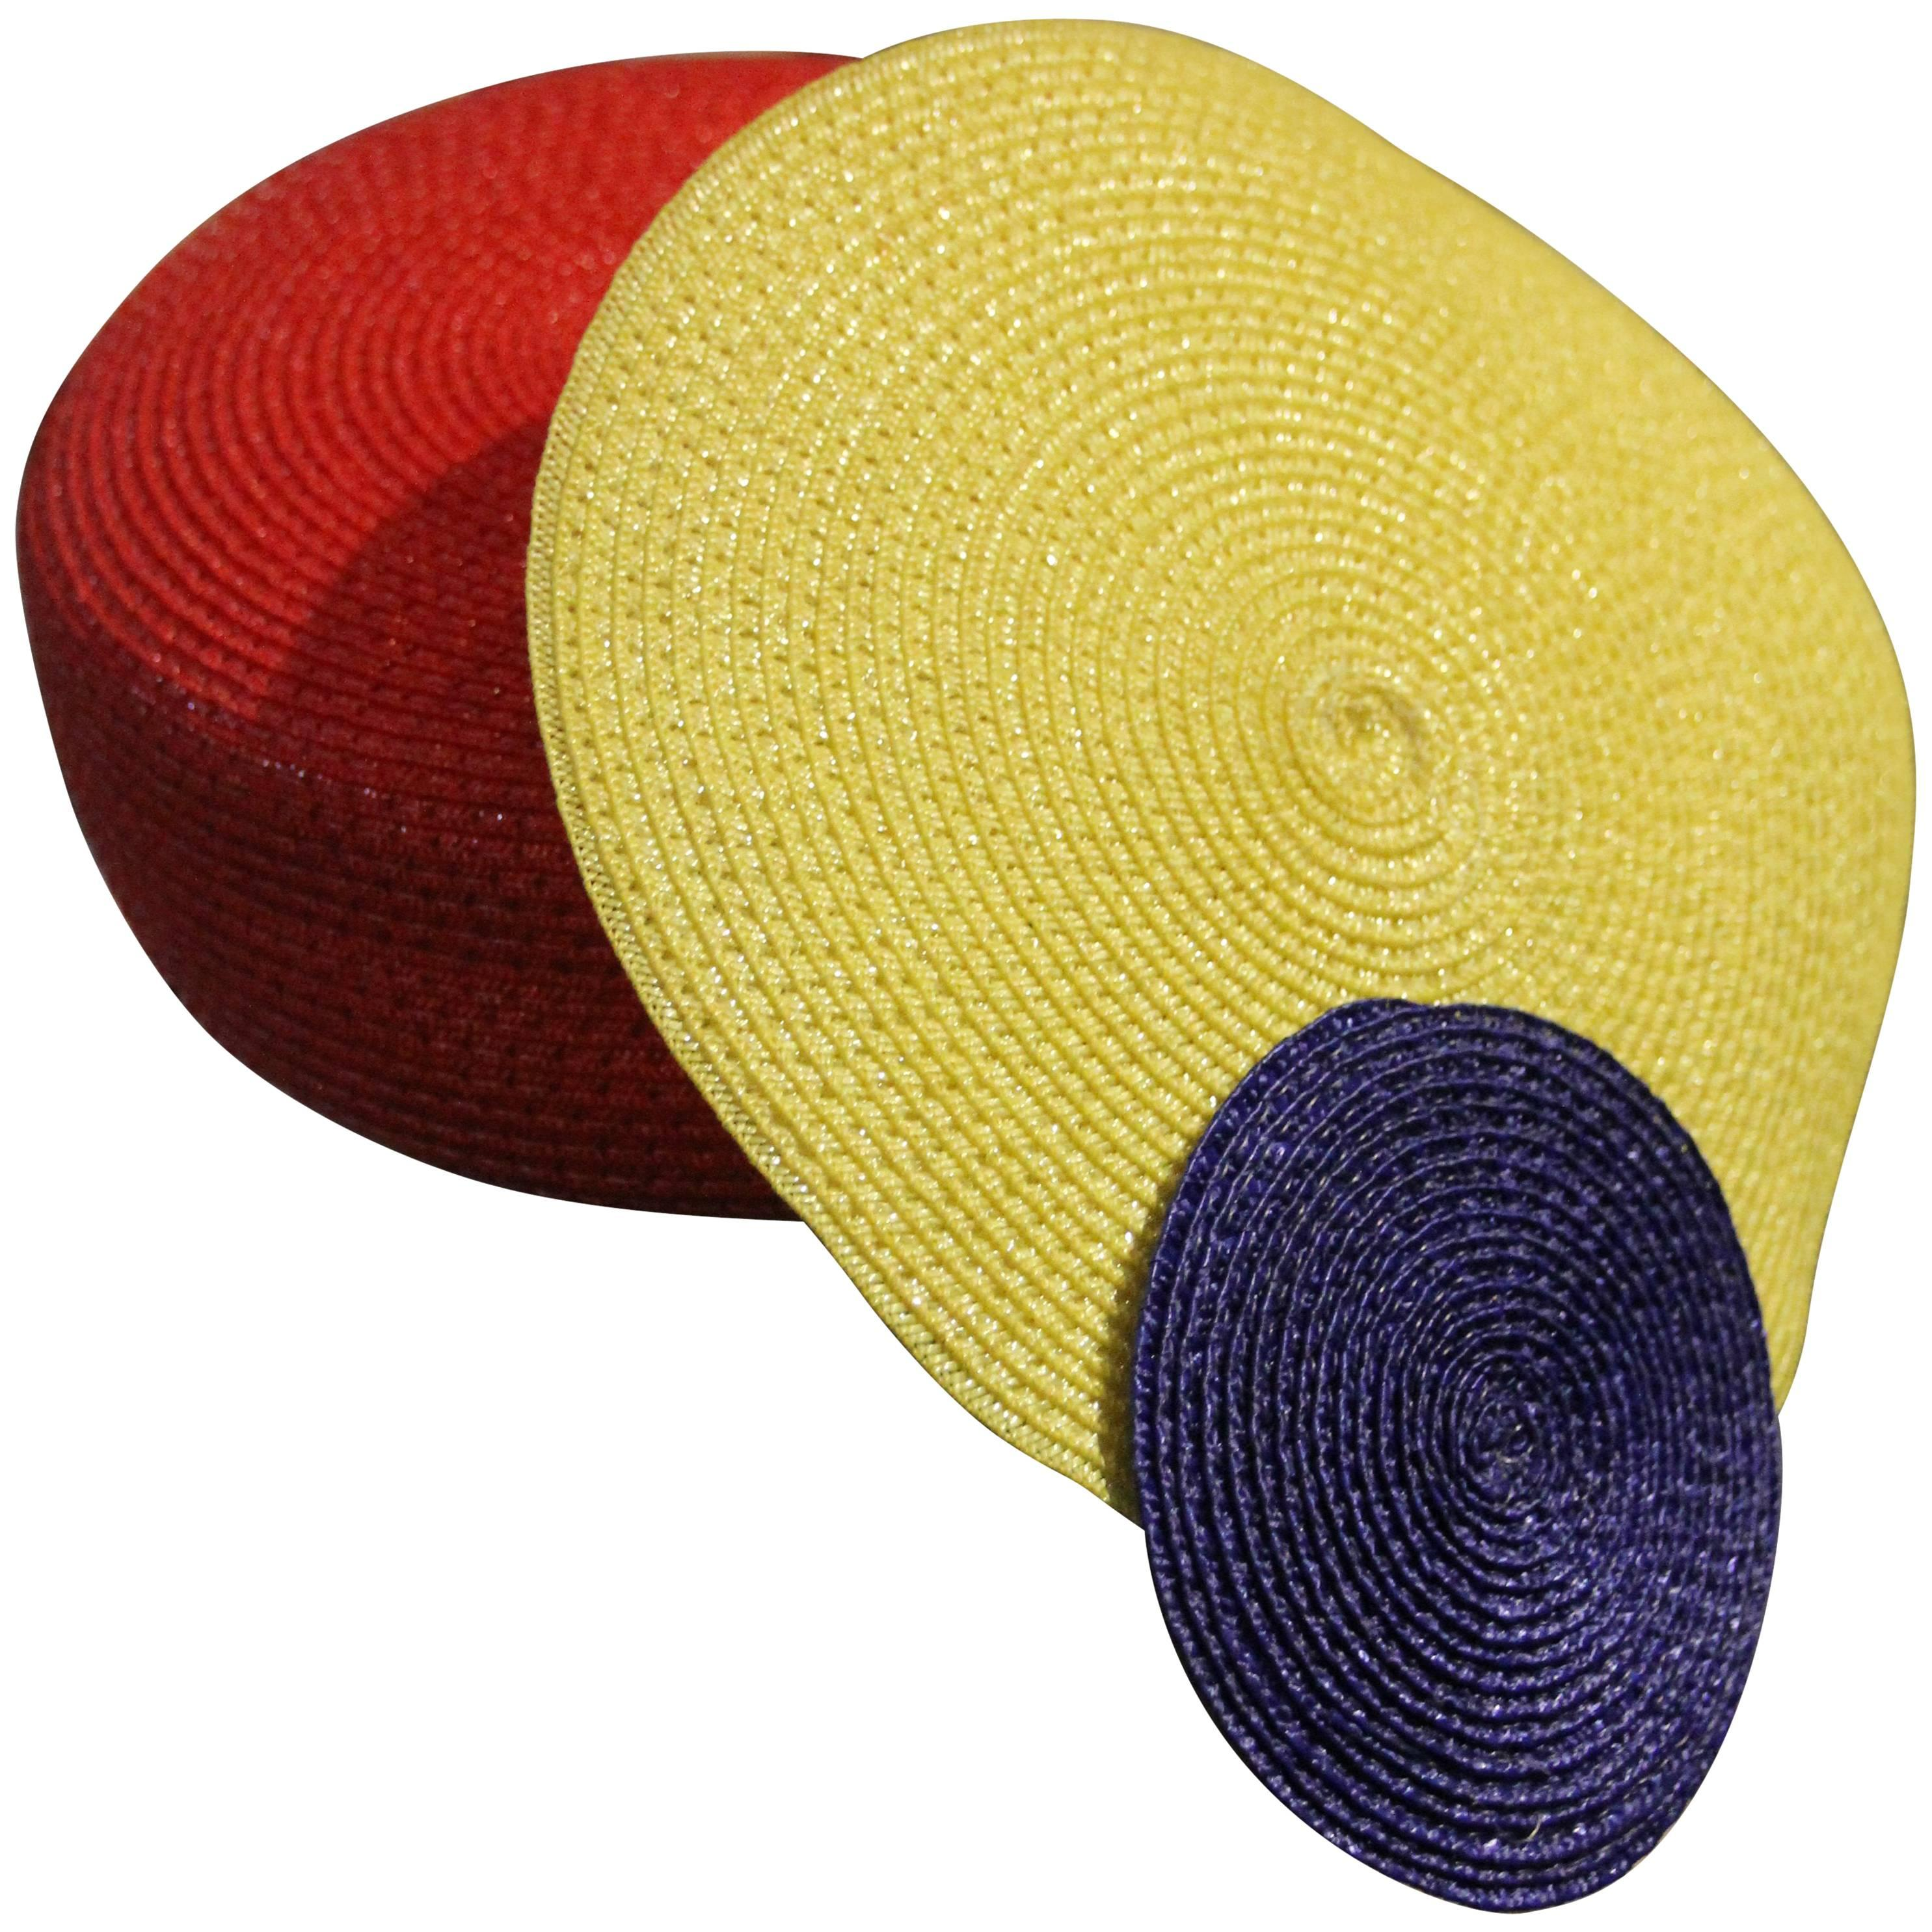 "1980s Whimsical ""Dot"" Tilt-Style Straw Hat in Primary Red Blue and Yellow"